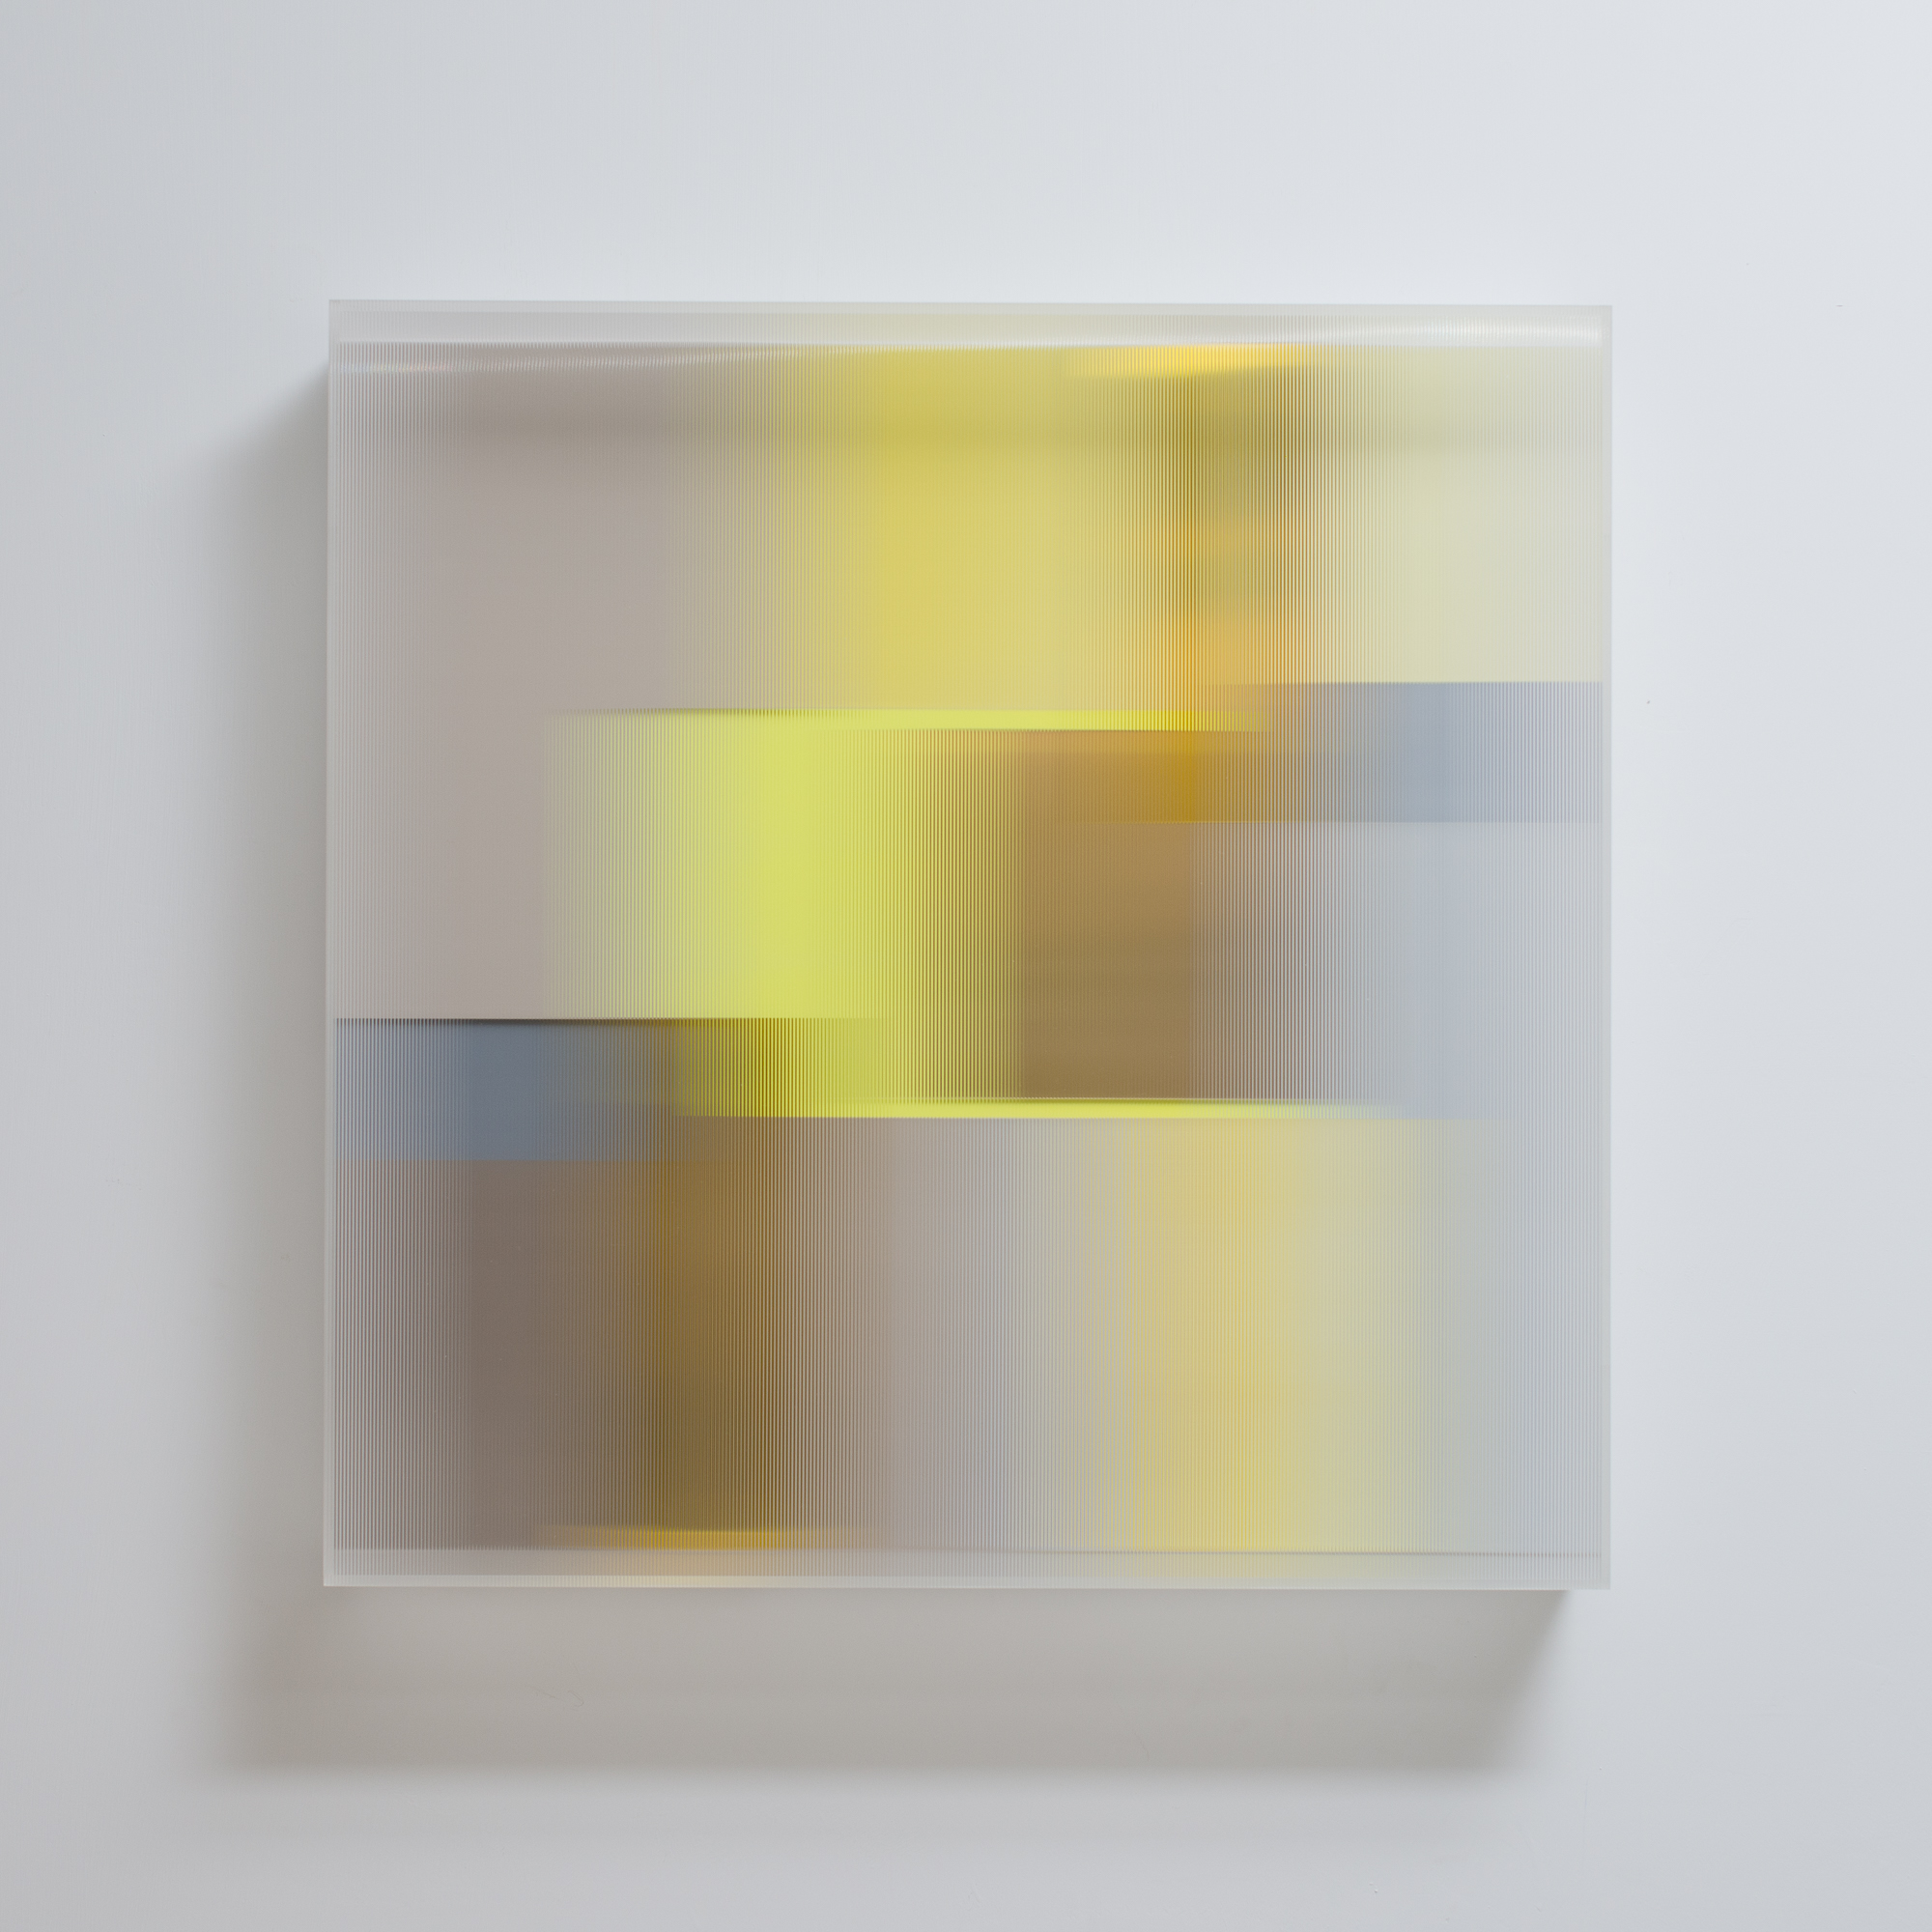 Christiane Grimm Sliding into gold 60x60x10cm 2019 mixed media and acrylic glass